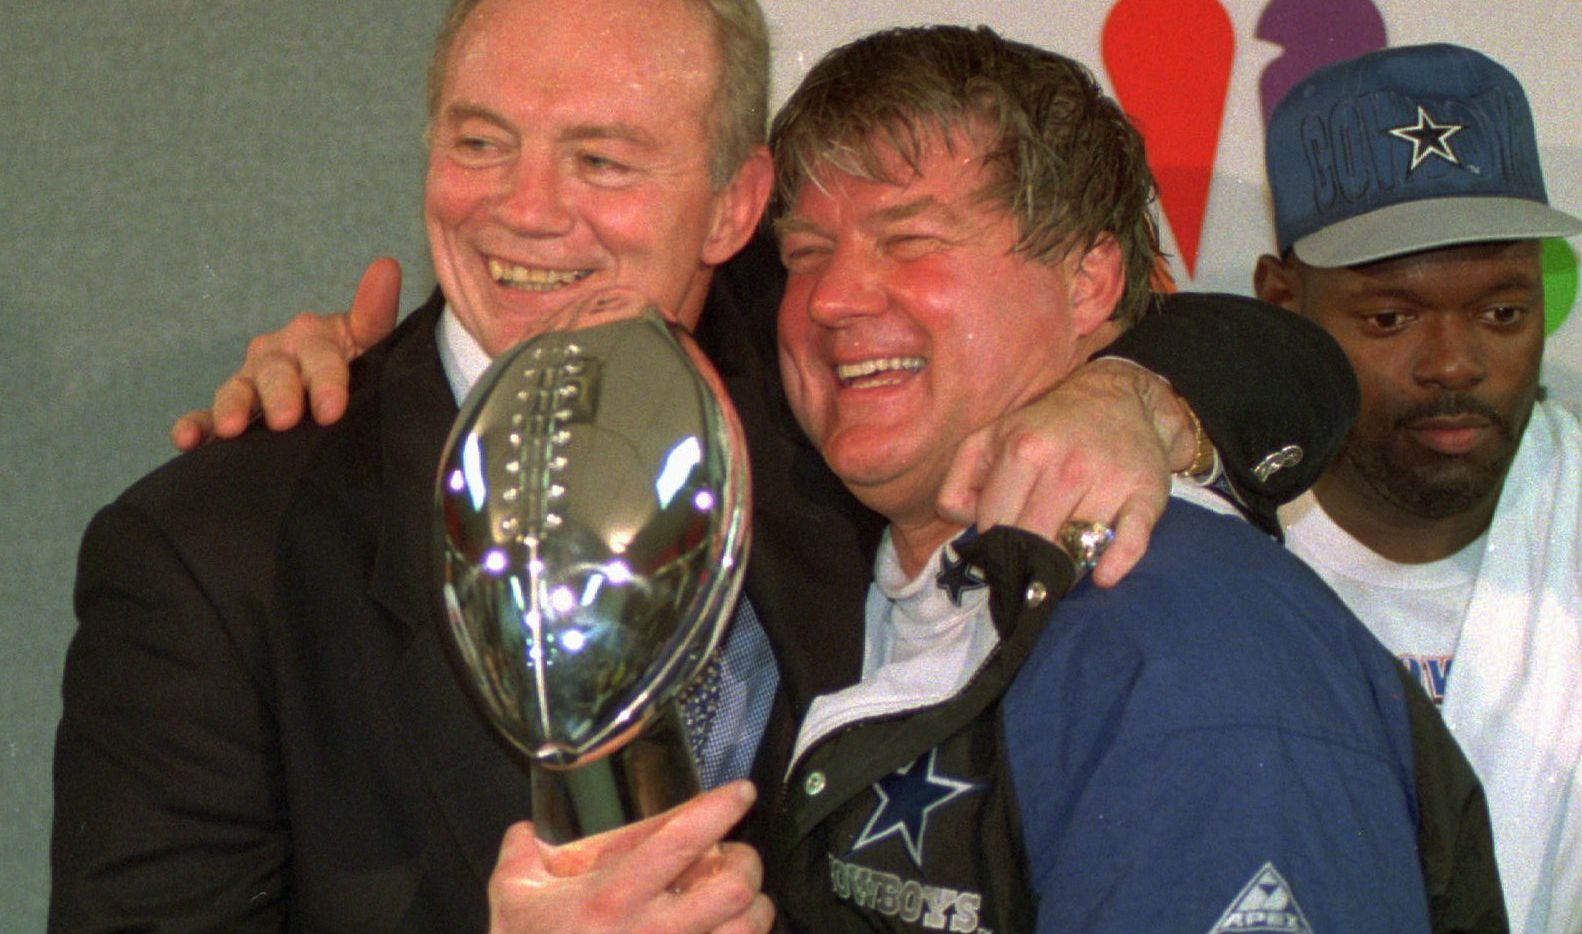 FILE - In this Jan. 30, 1994 file photo, Dallas Cowboys owner Jerry Jones, left, and coach Jimmy Johnson celebrate with the Vince Lombardi trophy after defeating the Buffalo Bills 30-13 in  Super Bowl XXVIII at the Georgia Dome in Atlanta. (AP Photo/Charles Krupa, File)